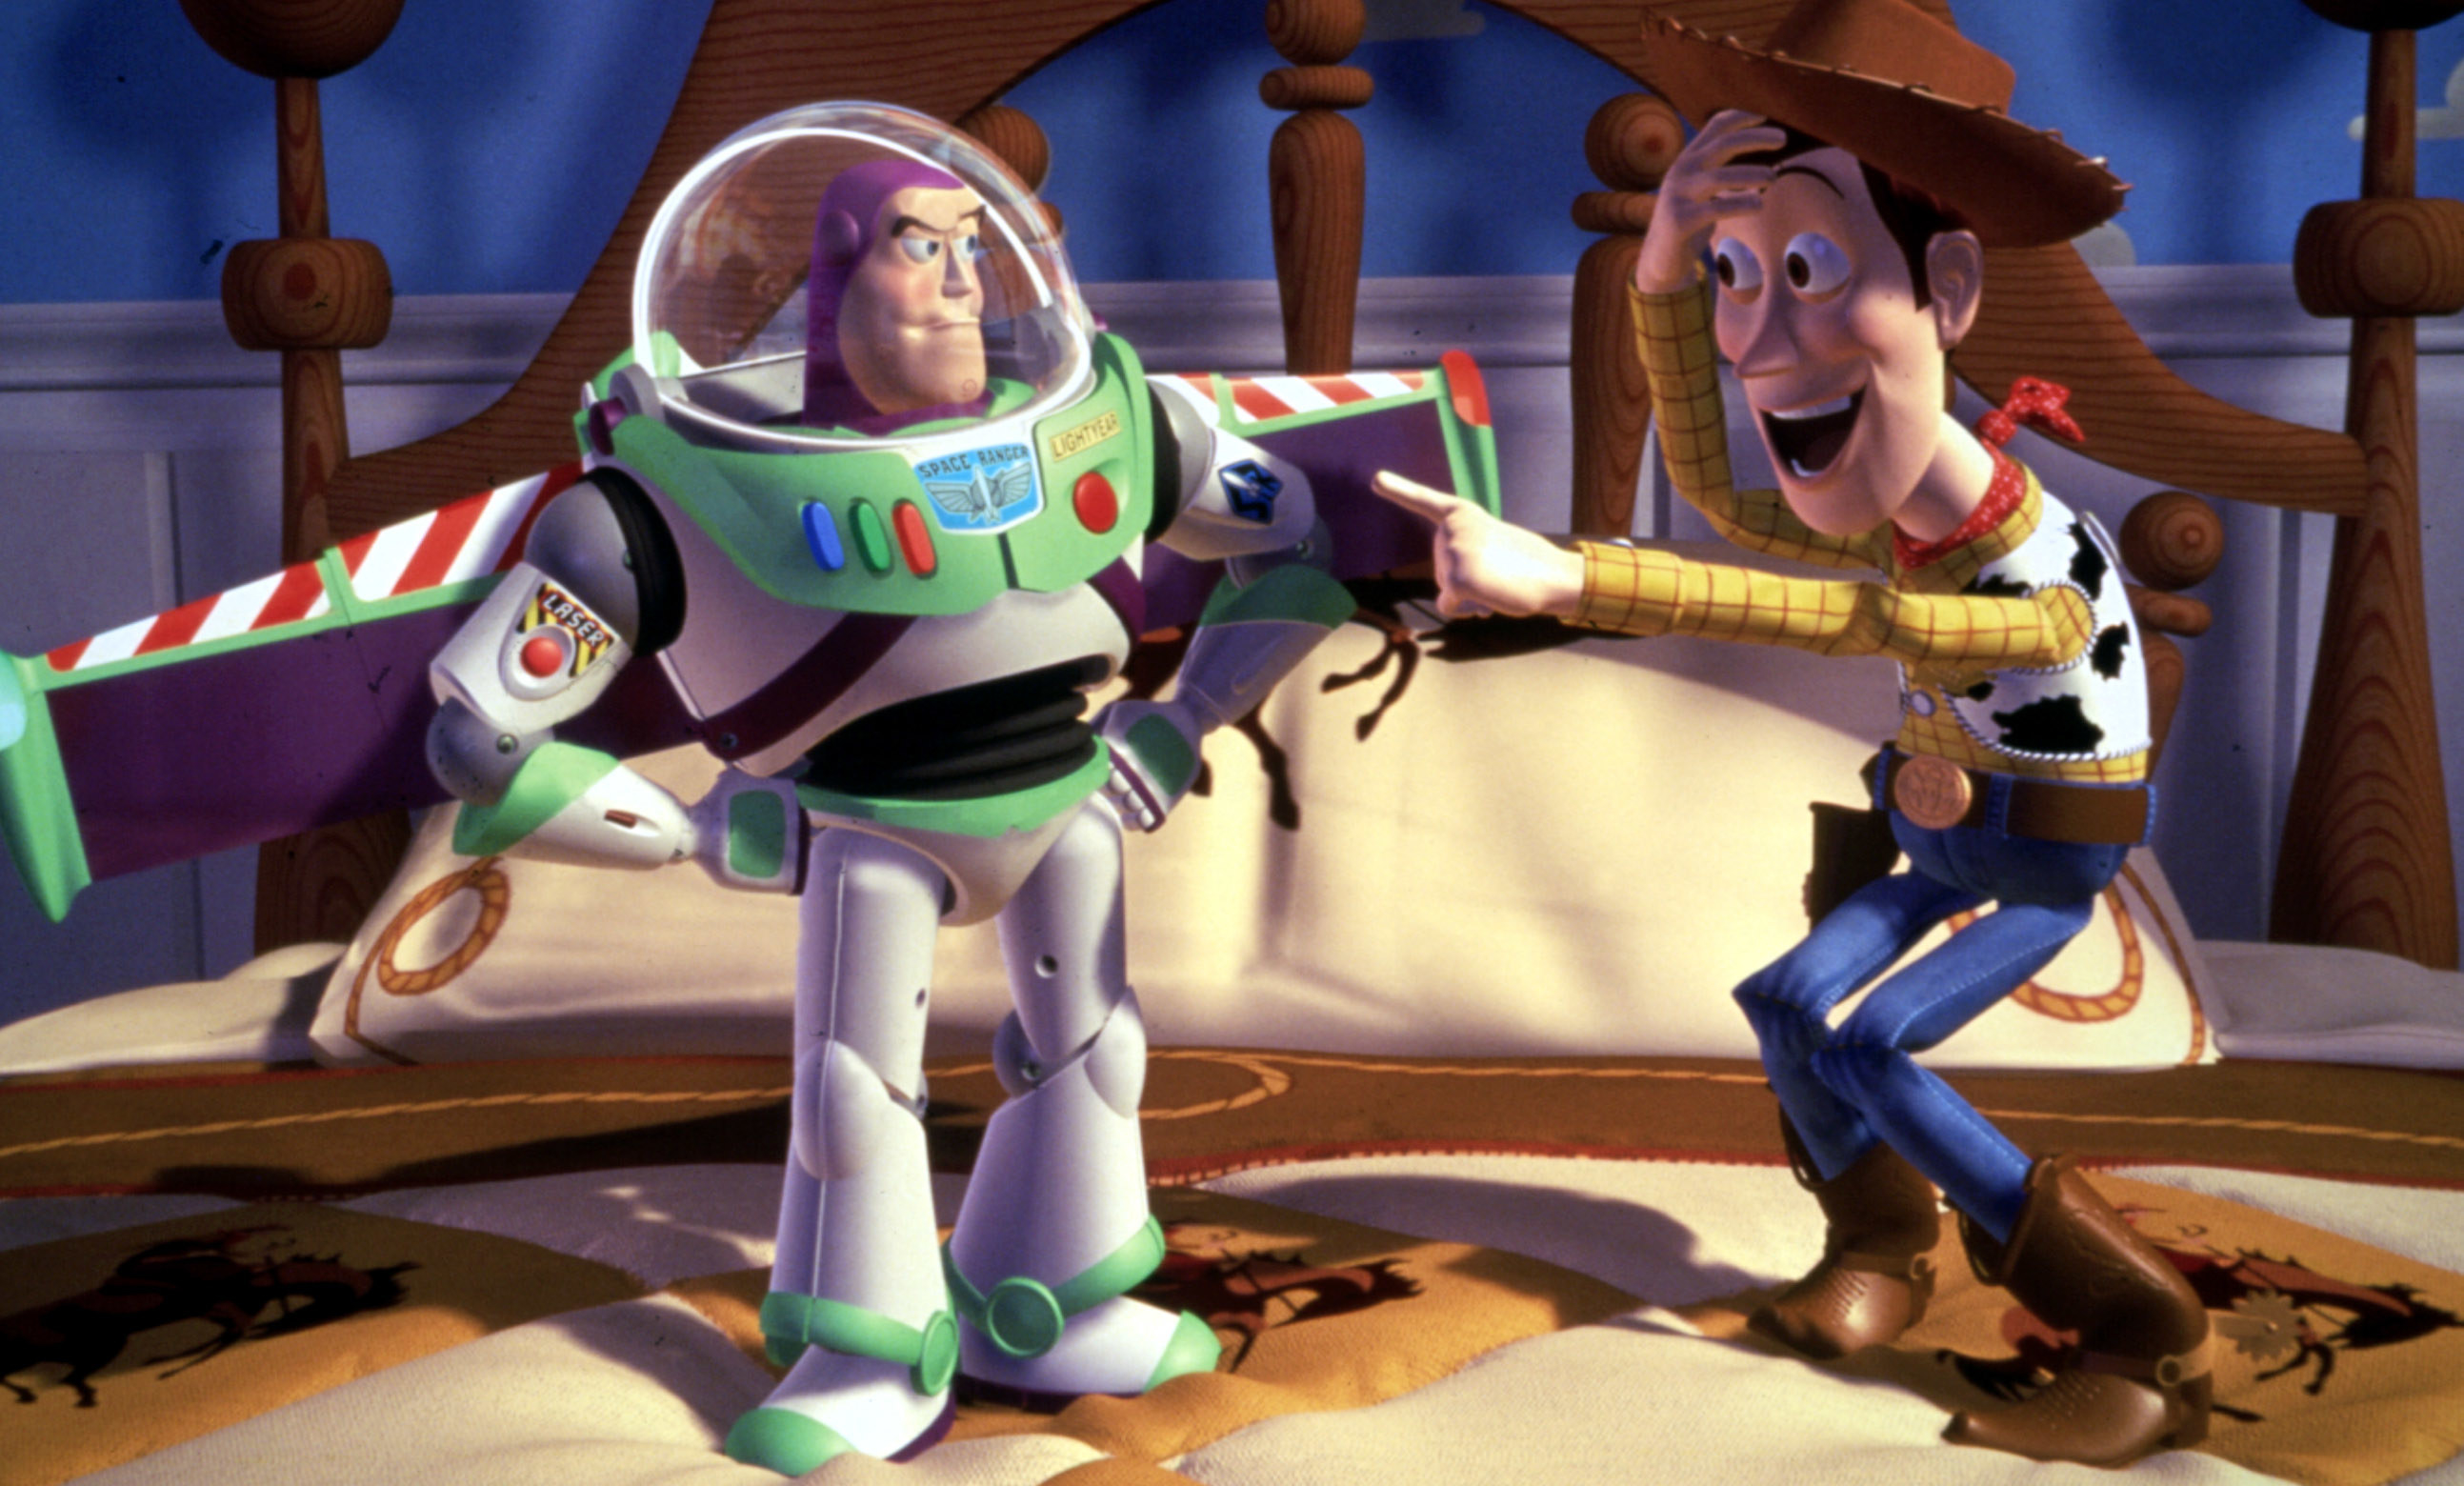 Buzz Lightyear with his wings out and Woody pointing at him and laughing